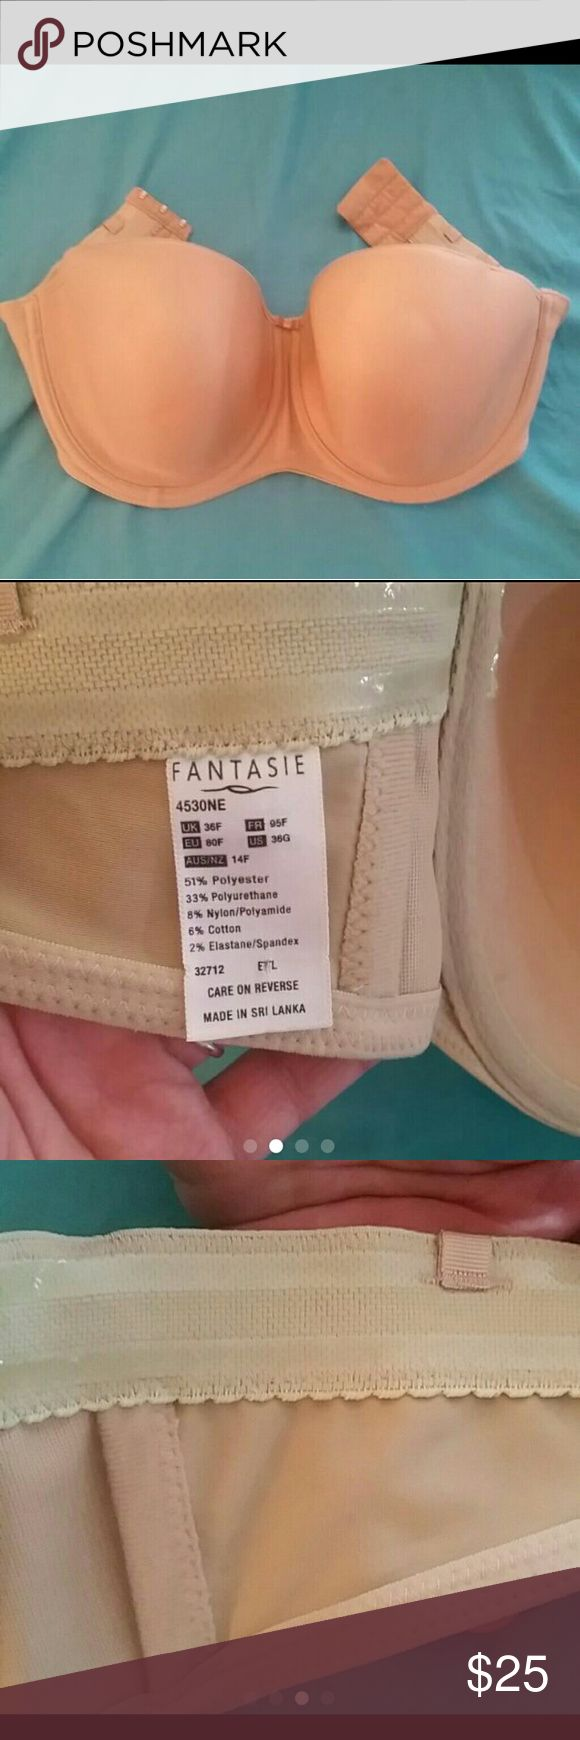 NWOT Fantasie 36G convertible strapless bra New without tags. Took them off and realized it did not fit properly. Nude beige colored. 36G 36DDDD or 36F uk size.  Lightly lined. Fantasie Intimates & Sleepwear Bras